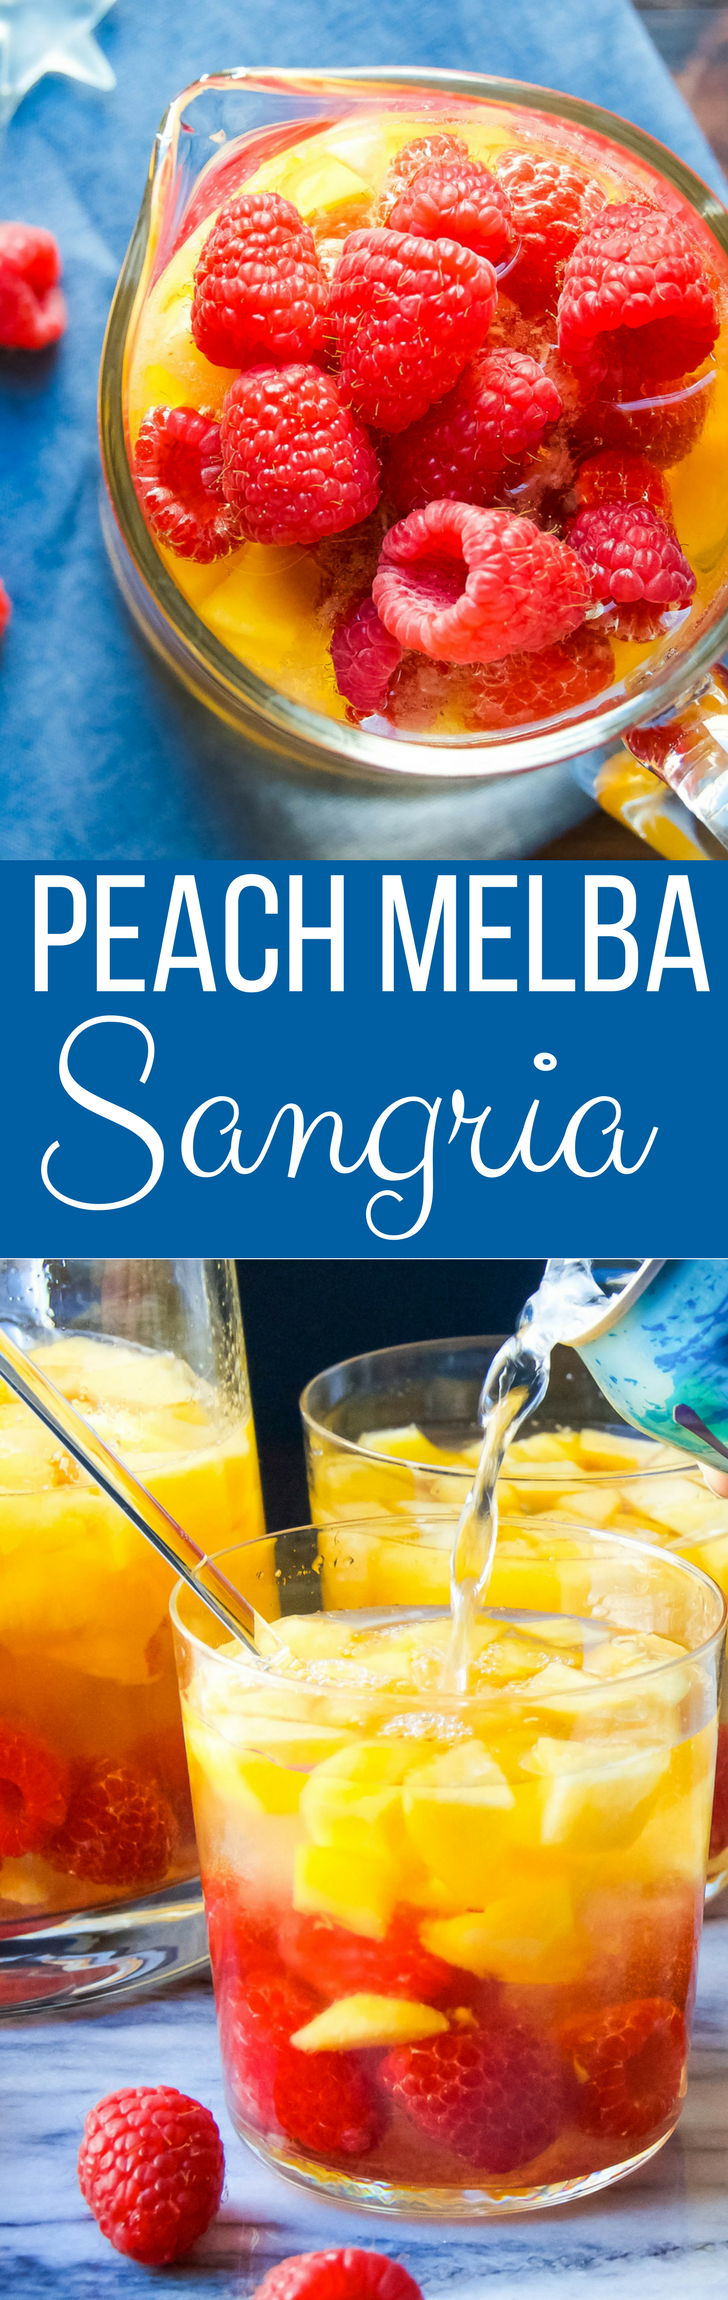 This easy Peach Melba Sangria recipe is a twist on the classic. Chilled white wine and peach schnapps loaded with ripe fruit for a refreshing summer sipper!